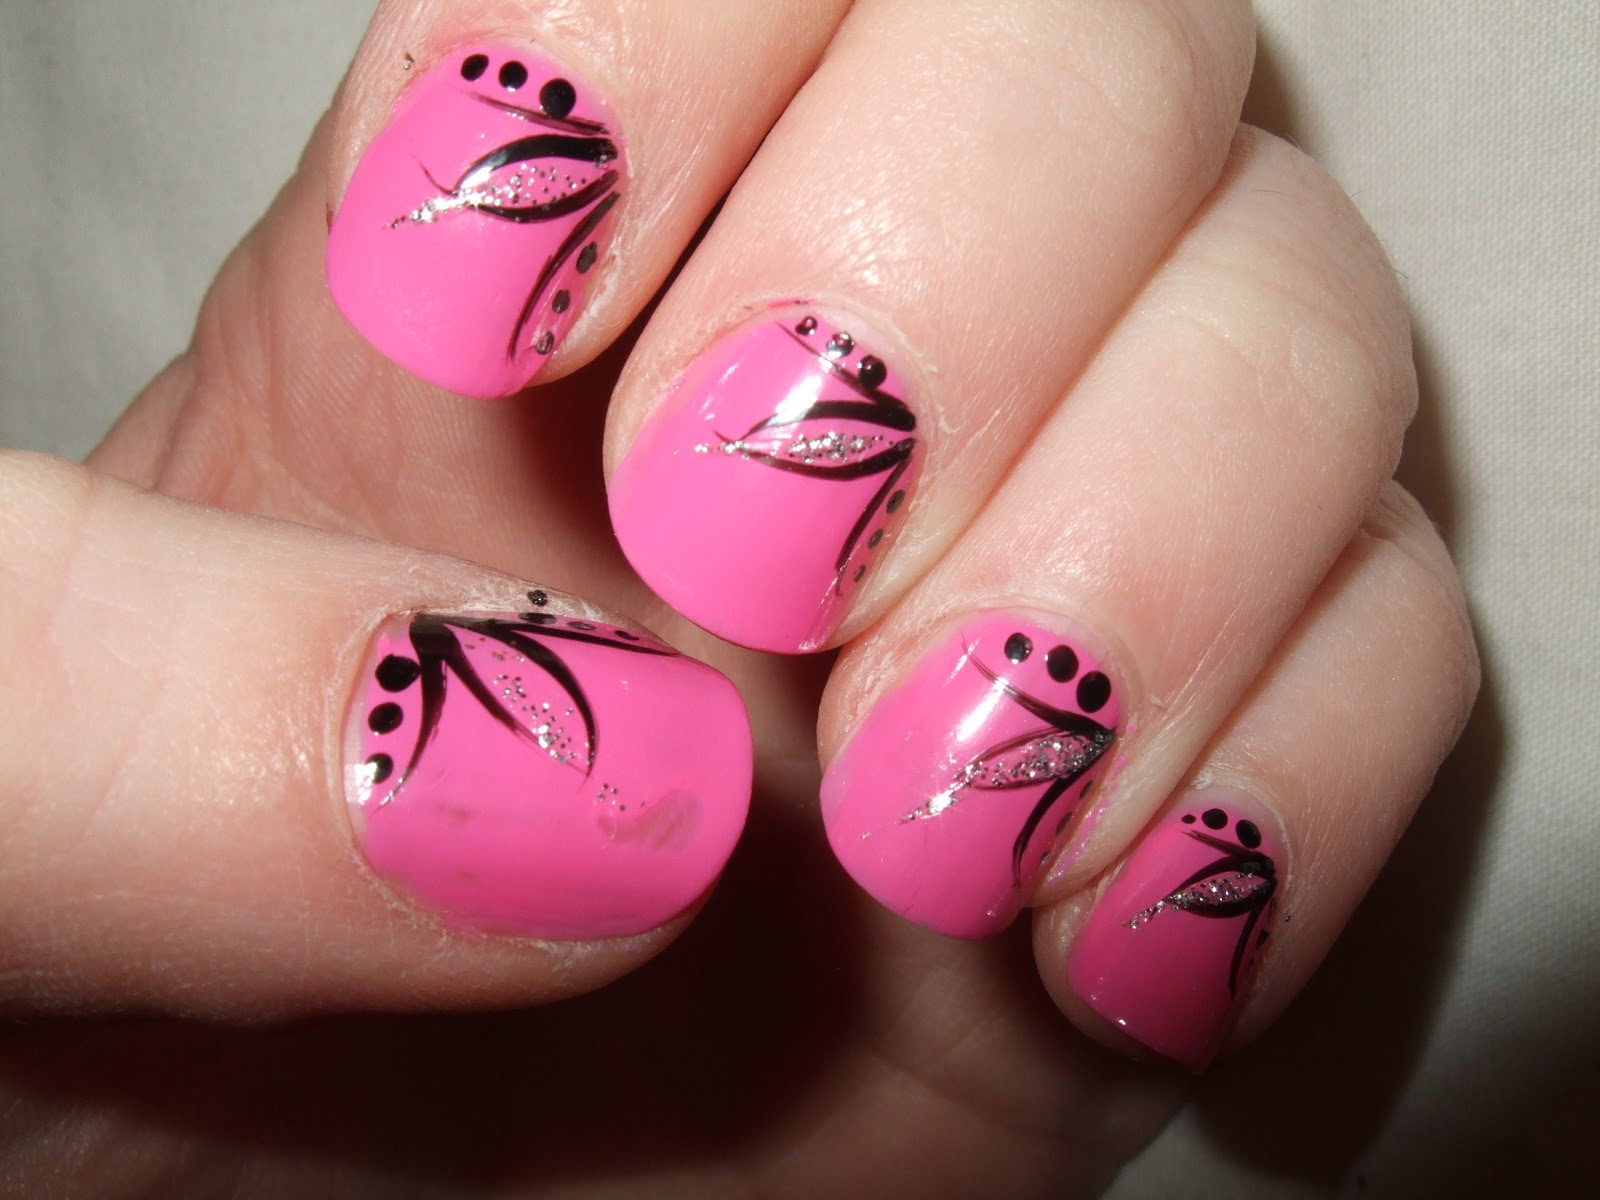 Nails Art: Oooooh Pretty: January 2012